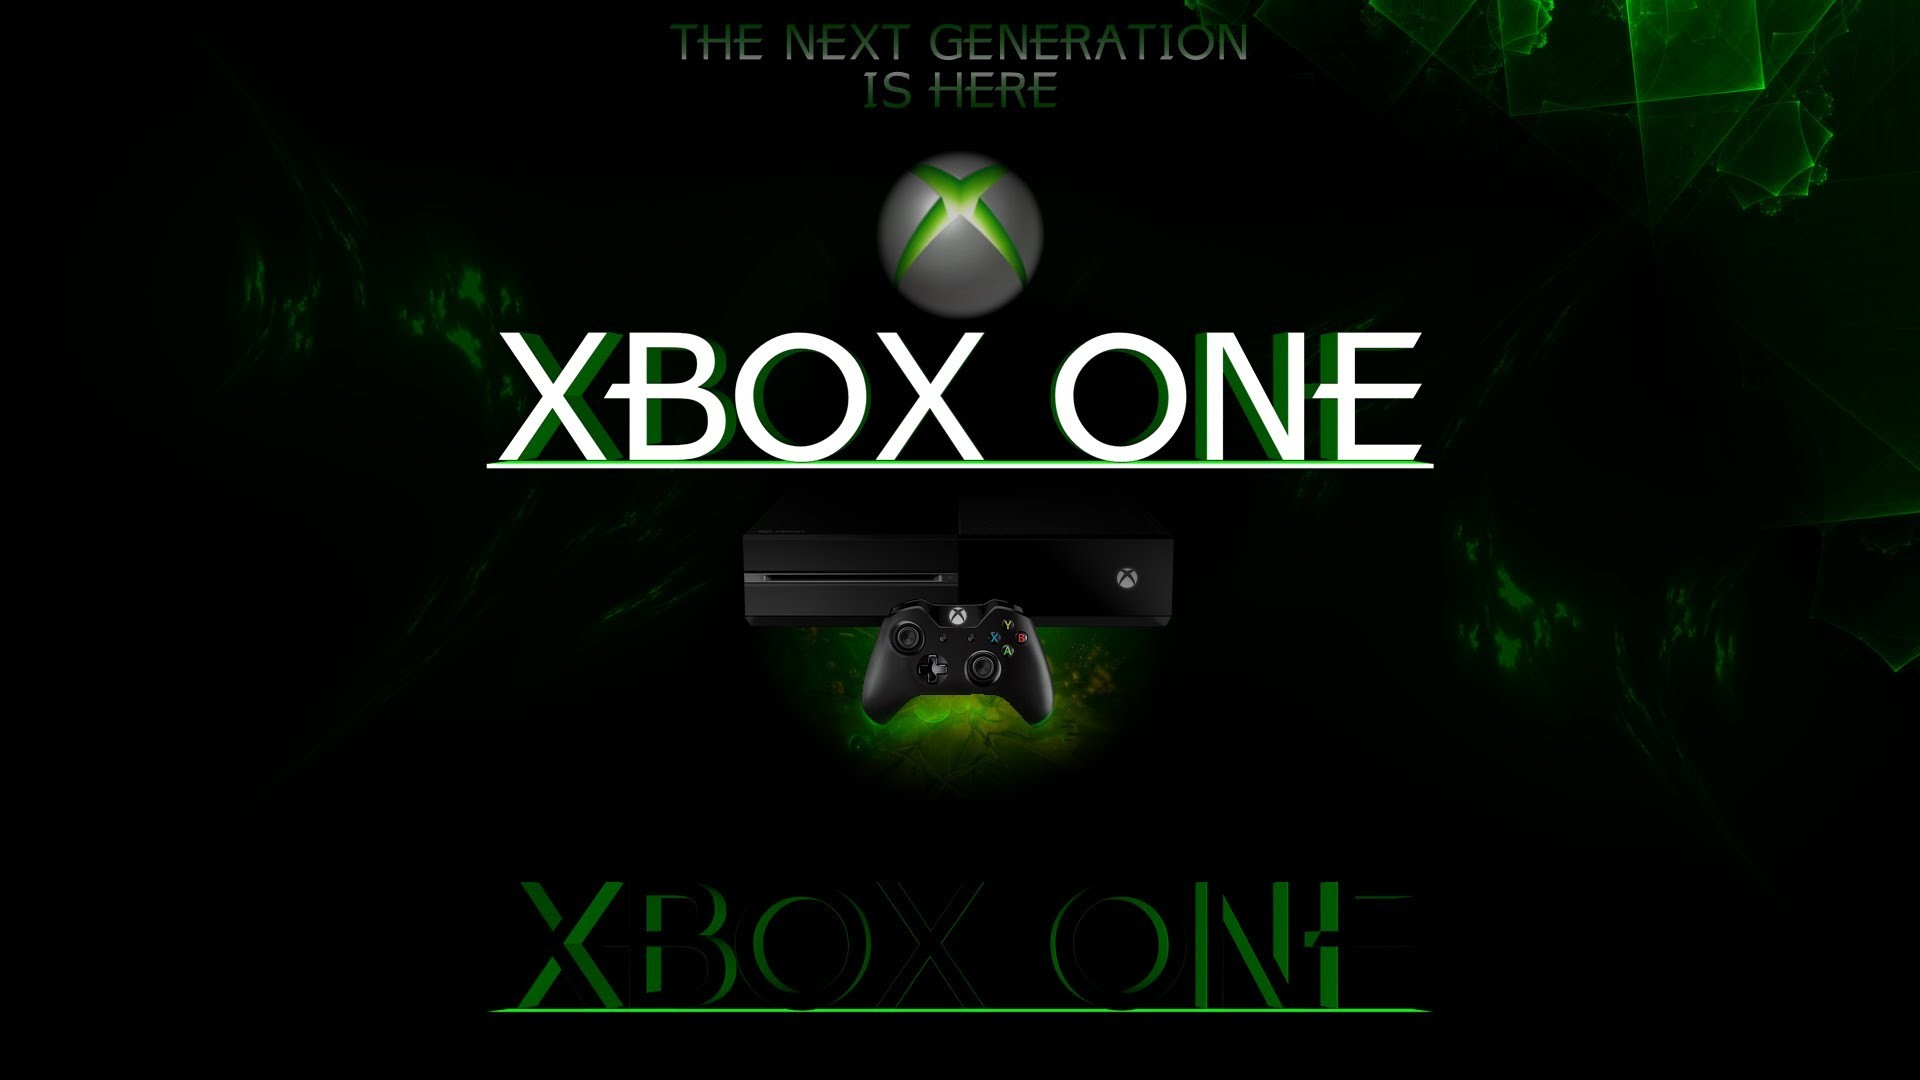 Xbox One Wallpapers: HD Xbox One Wallpaper (76+ Images